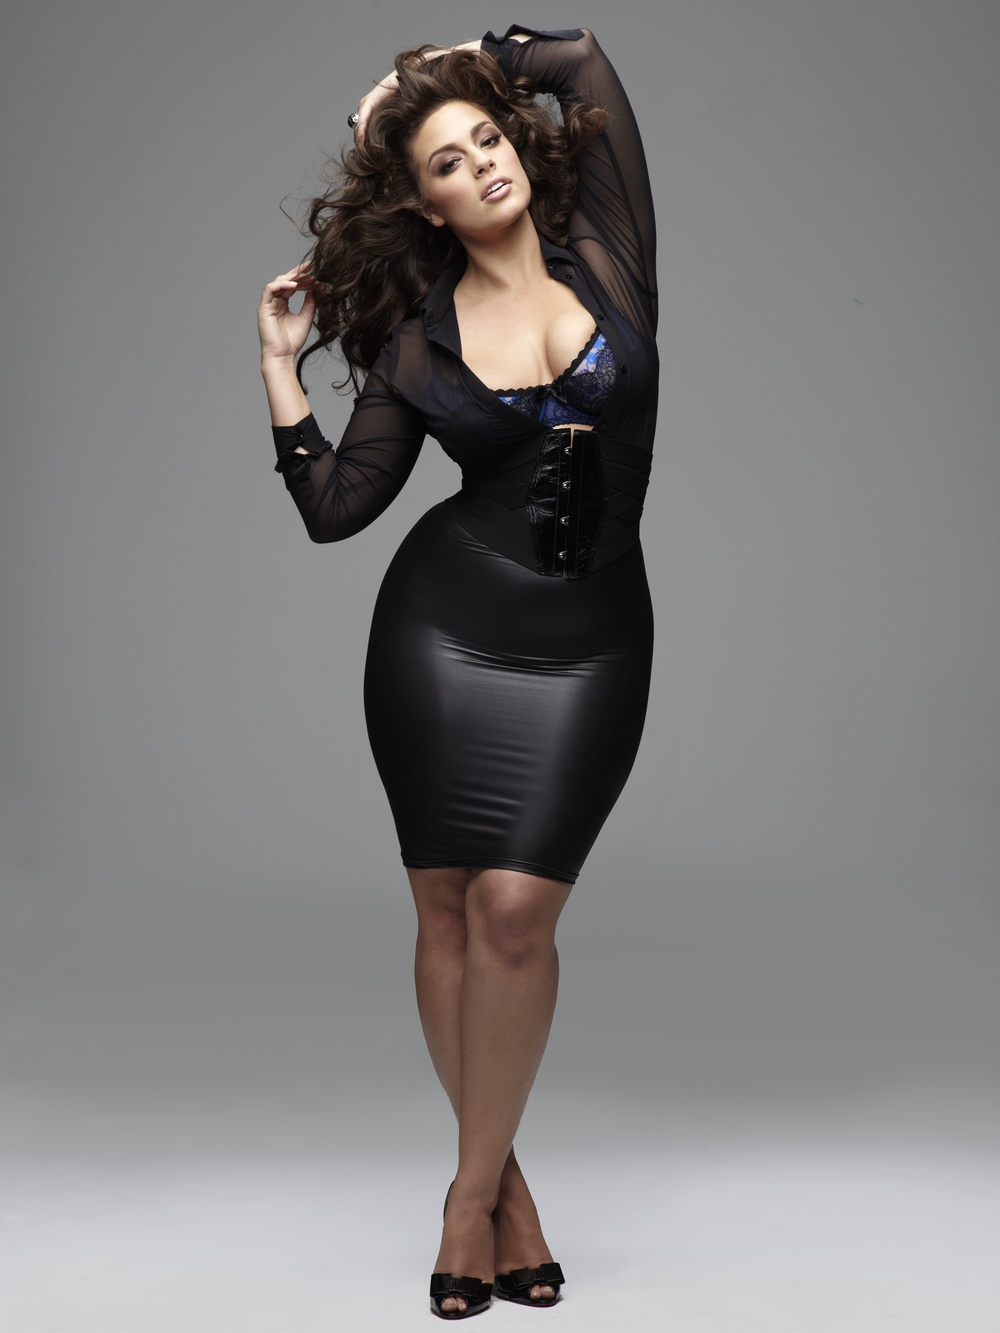 Ashley Graham (www.ashleygraham.com)